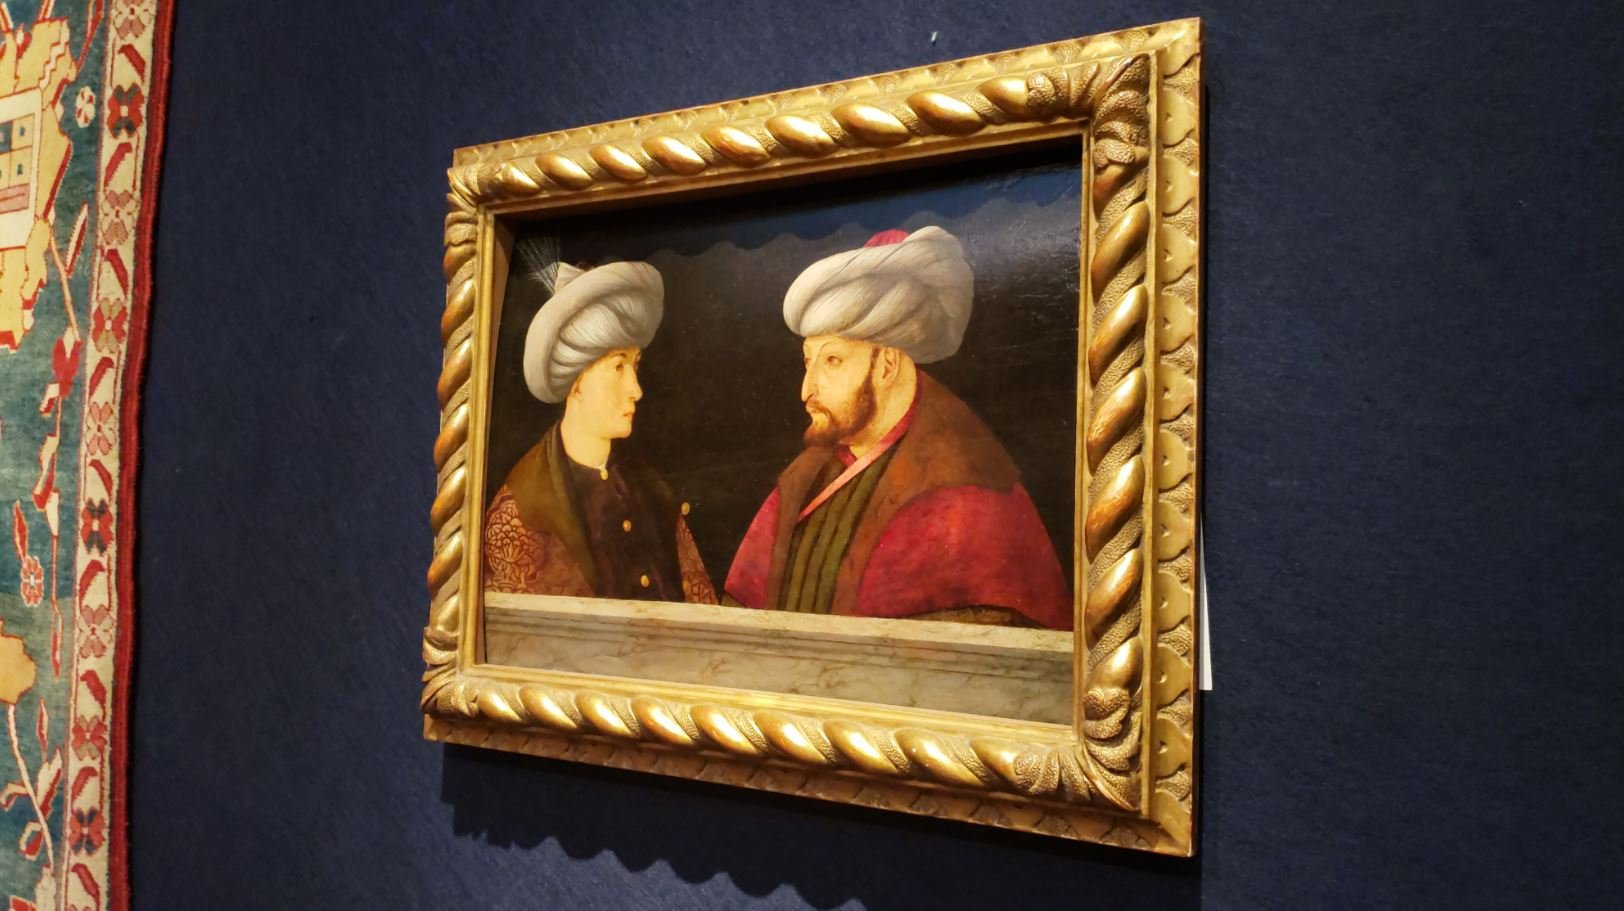 The purchased painting of the Sultan Mehmed II on the wall. ( DHA PHOTO)